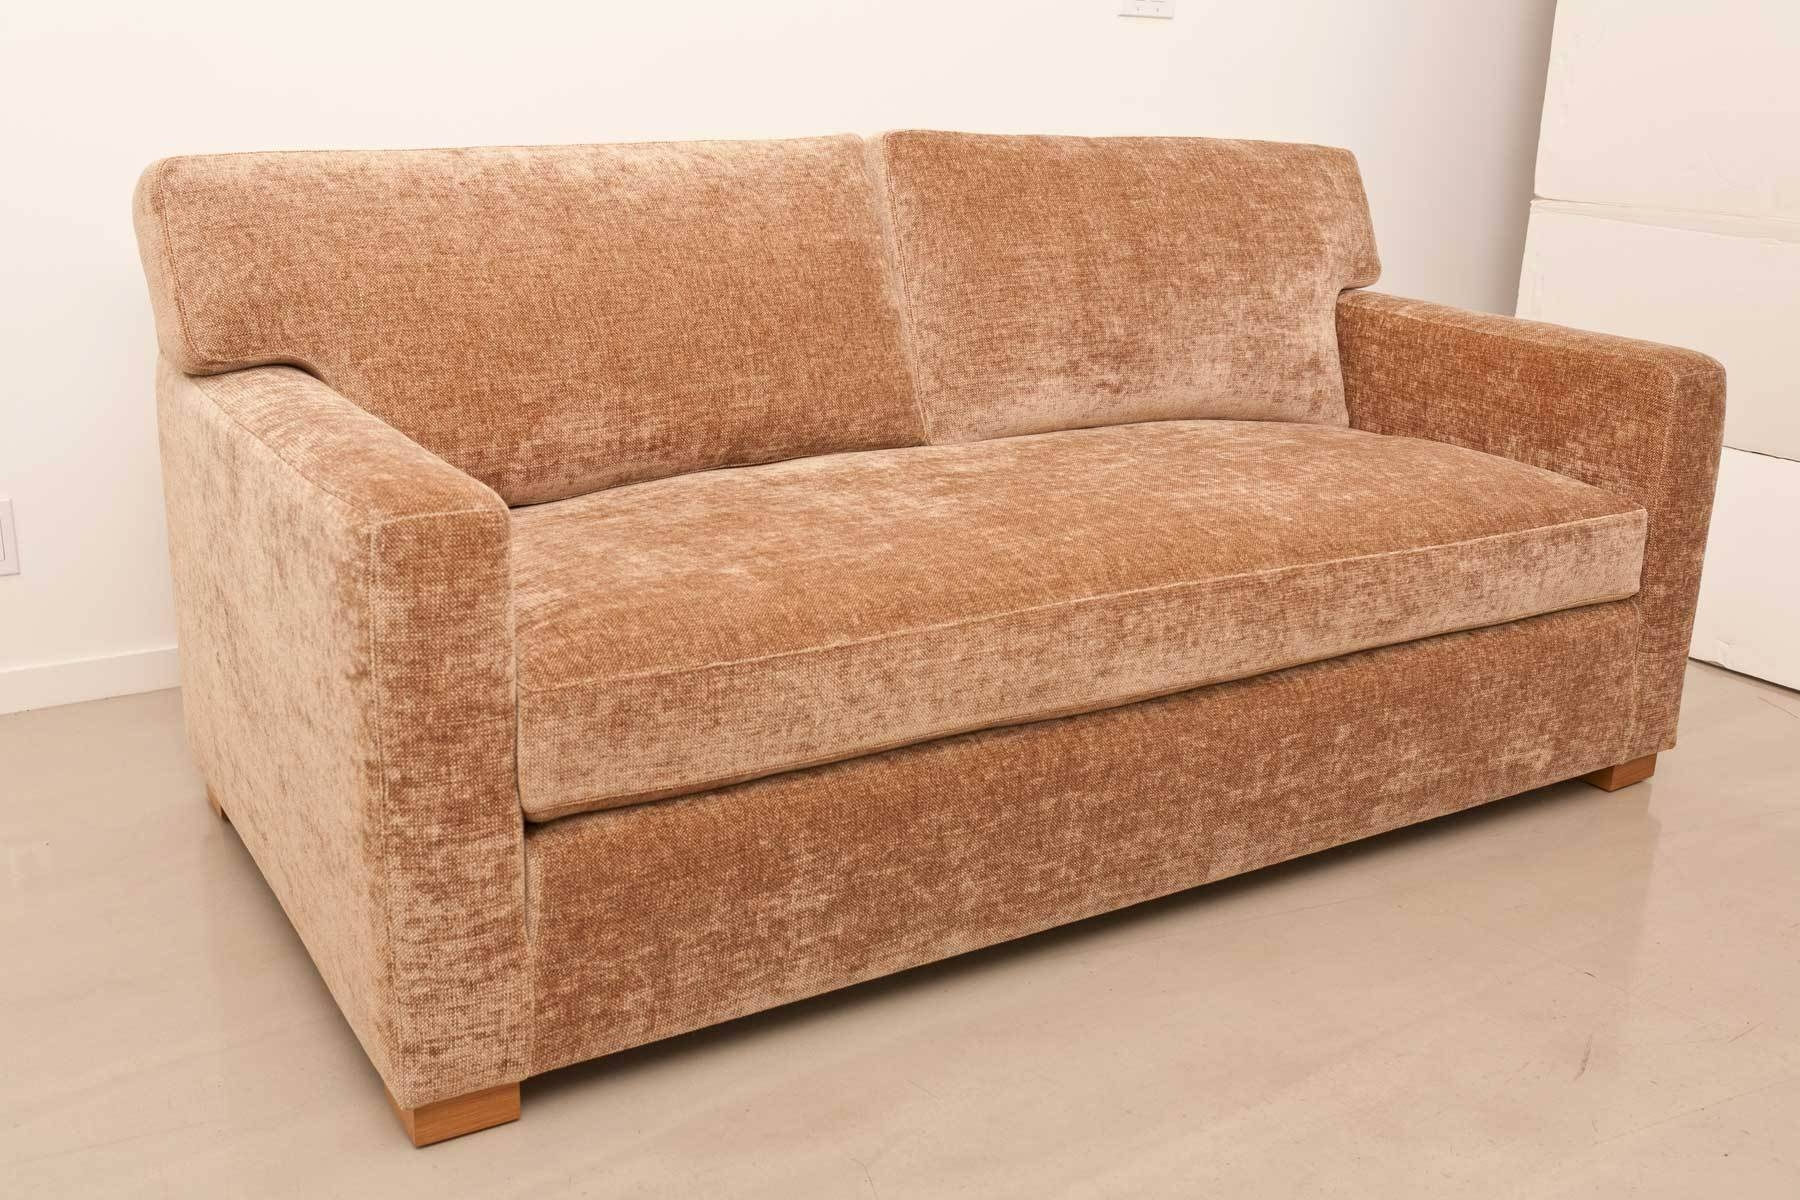 Foam Couch Cushions | Cushions Decoration pertaining to One Cushion Sofas (Image 6 of 30)